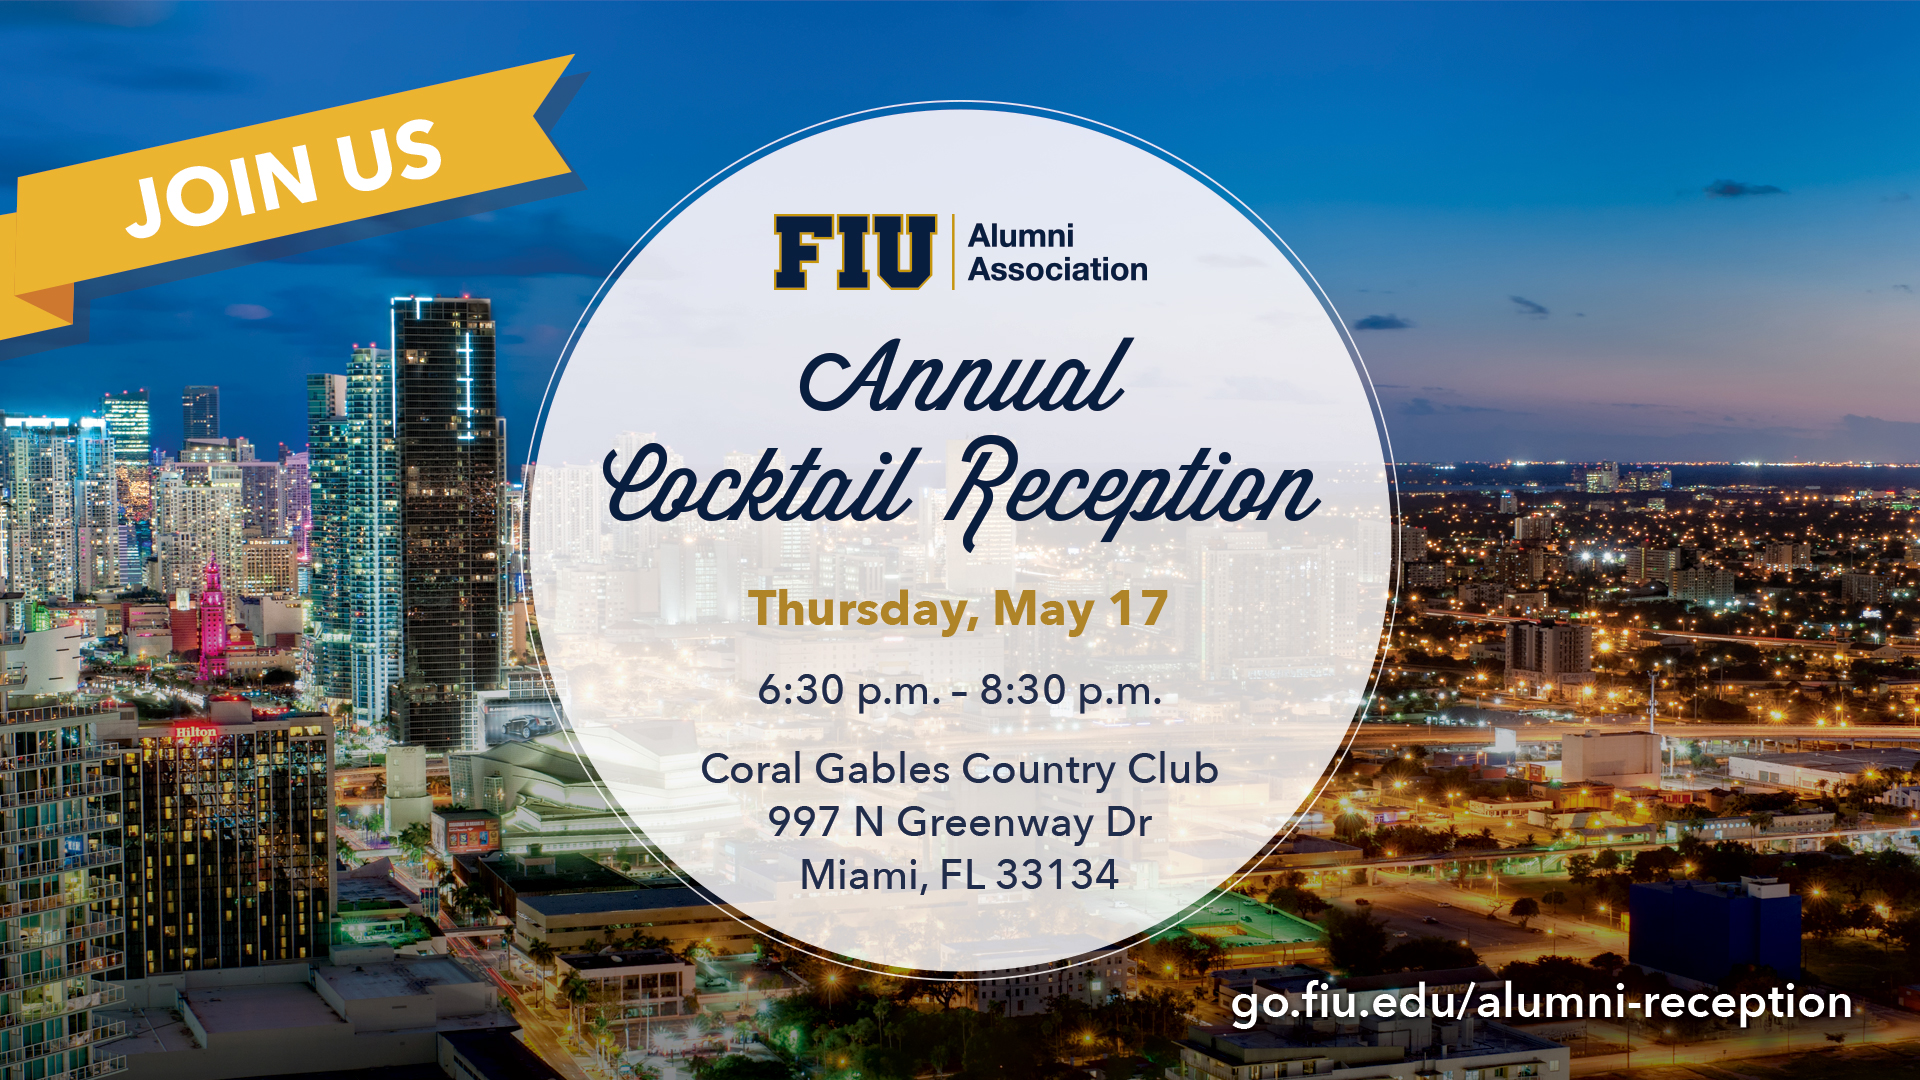 Annual Cocktail Reception - Thursday, May 17 - 6:30pm - 8:30pm